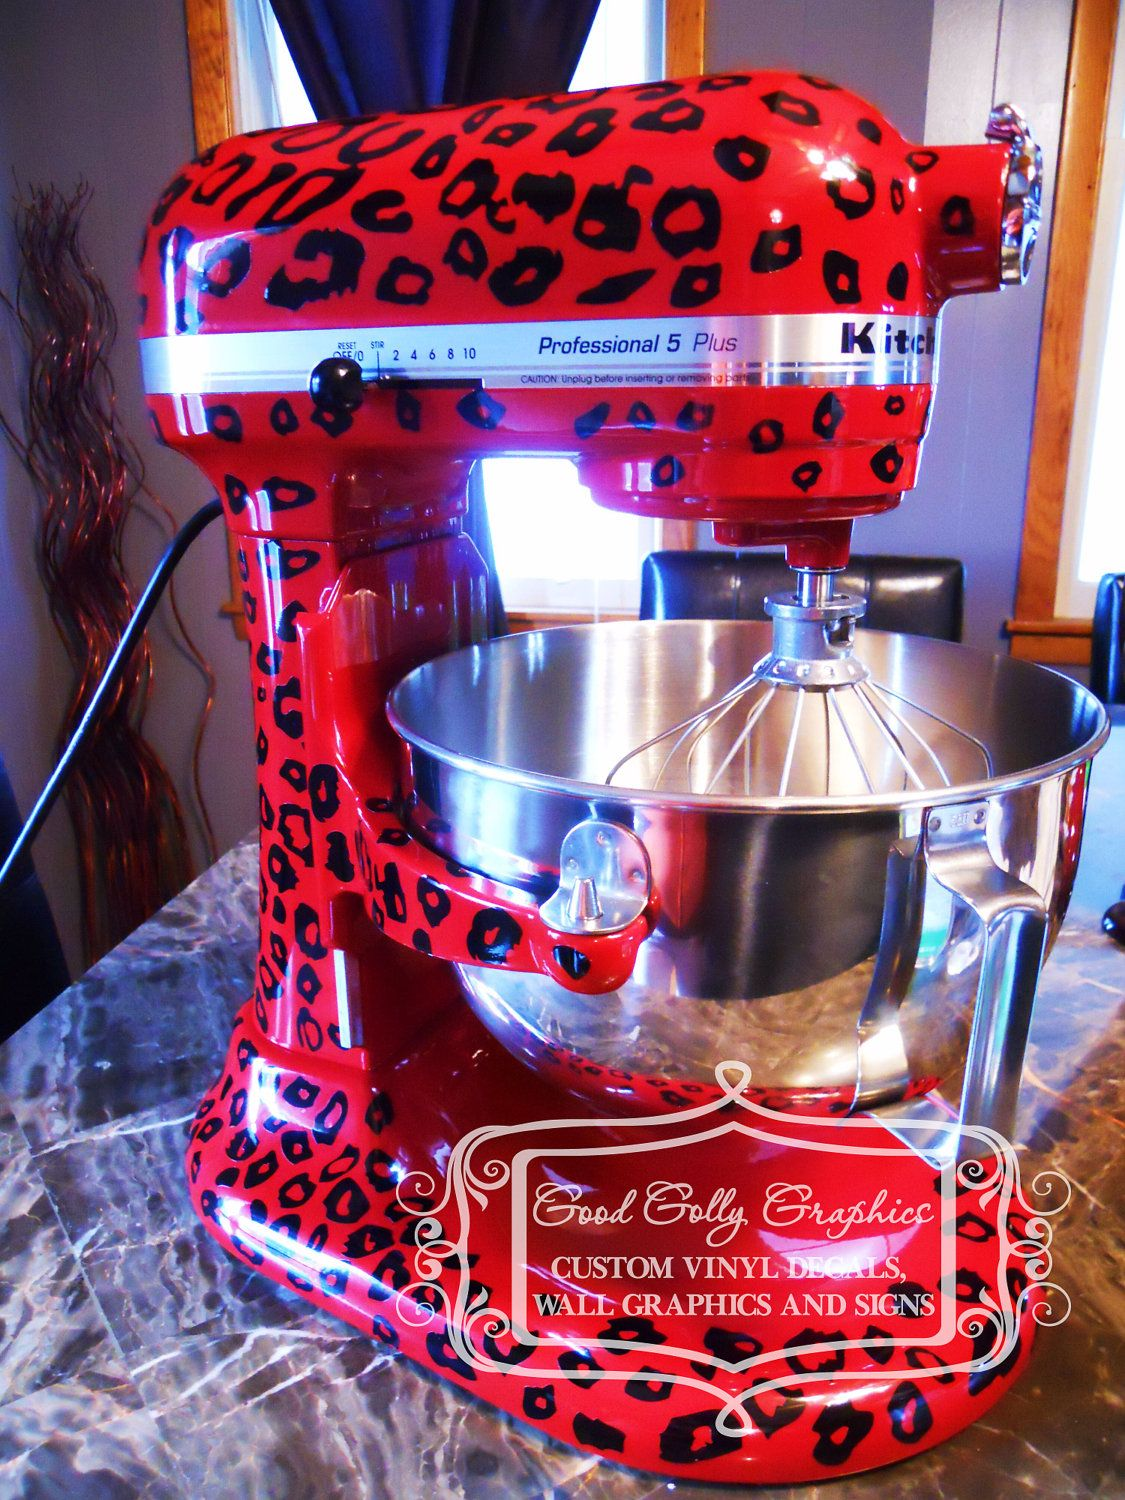 Kitchen mixer vinyl decal LEOPARD PRINT decal nothin like a sassy kitchen aid !